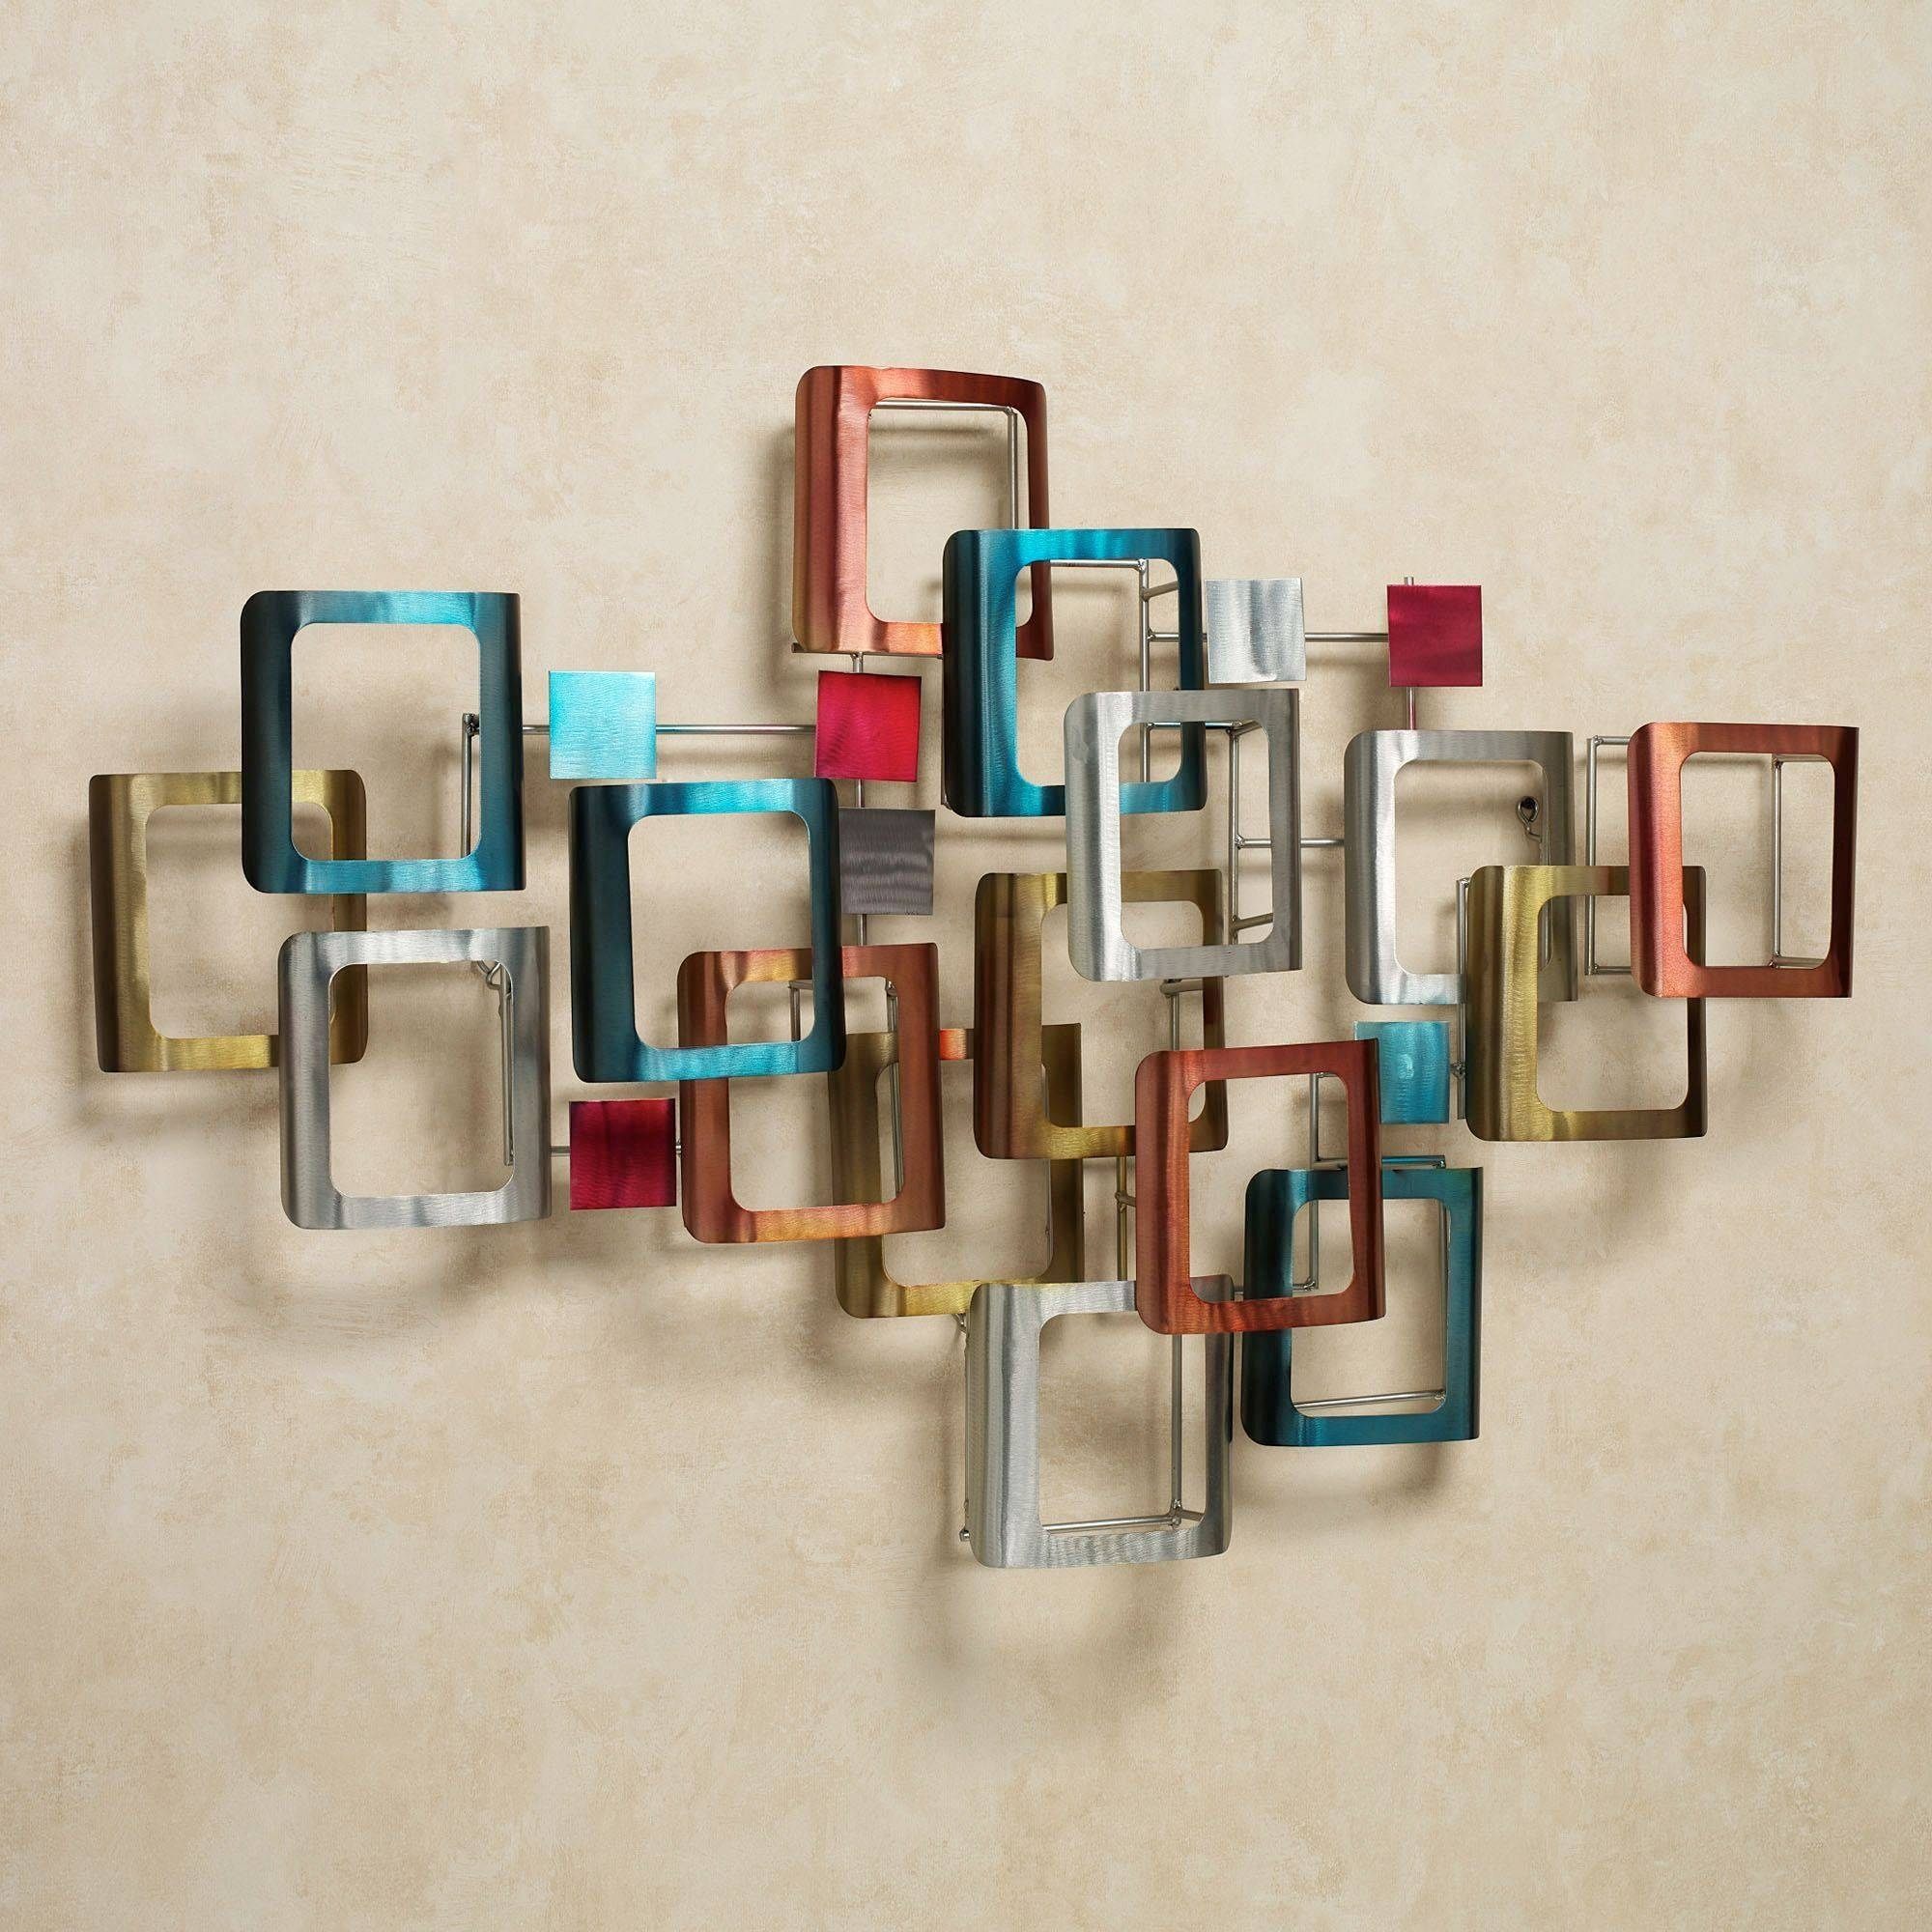 Contemporary Metal Wall Art Sculptures | Touch Of Class Pertaining To Most Up To Date Jeweled Metal Wall Art (View 8 of 20)